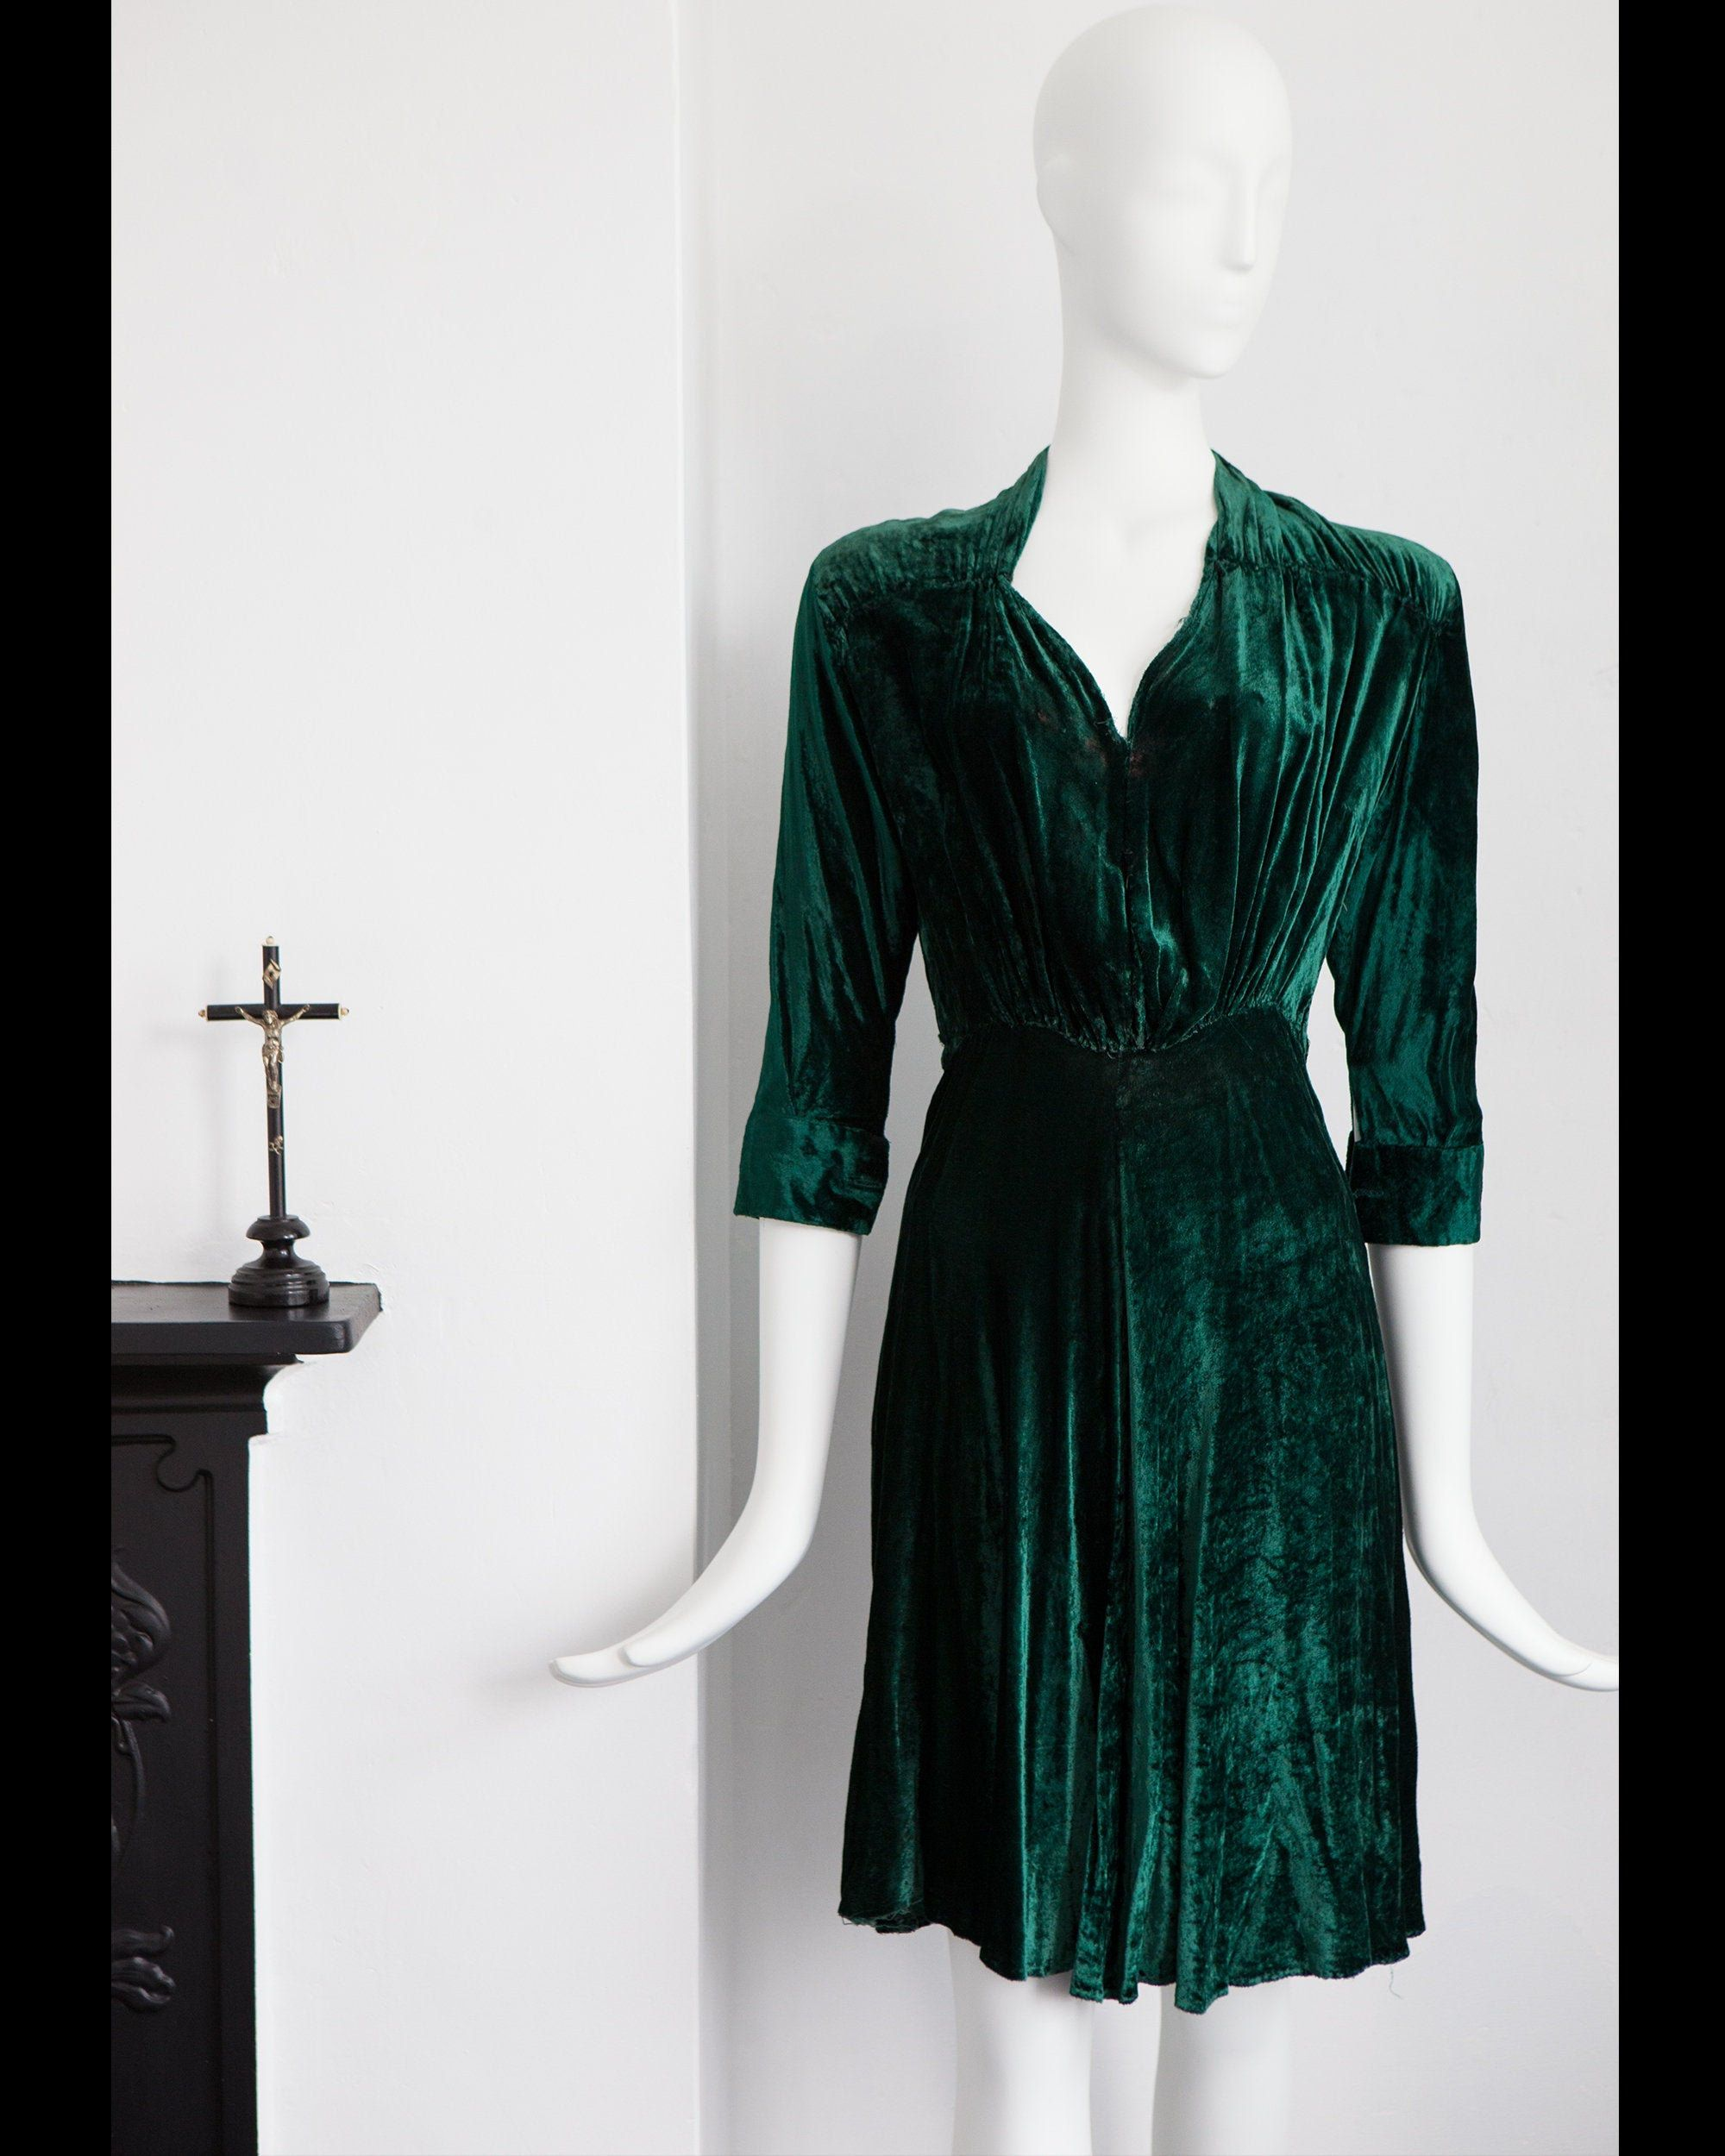 Vintage Green 1940s Velvet Dress With Cuffed Sleeves Etsy Velvet Dress Green Velvet Dress Dresses [ 2500 x 2000 Pixel ]